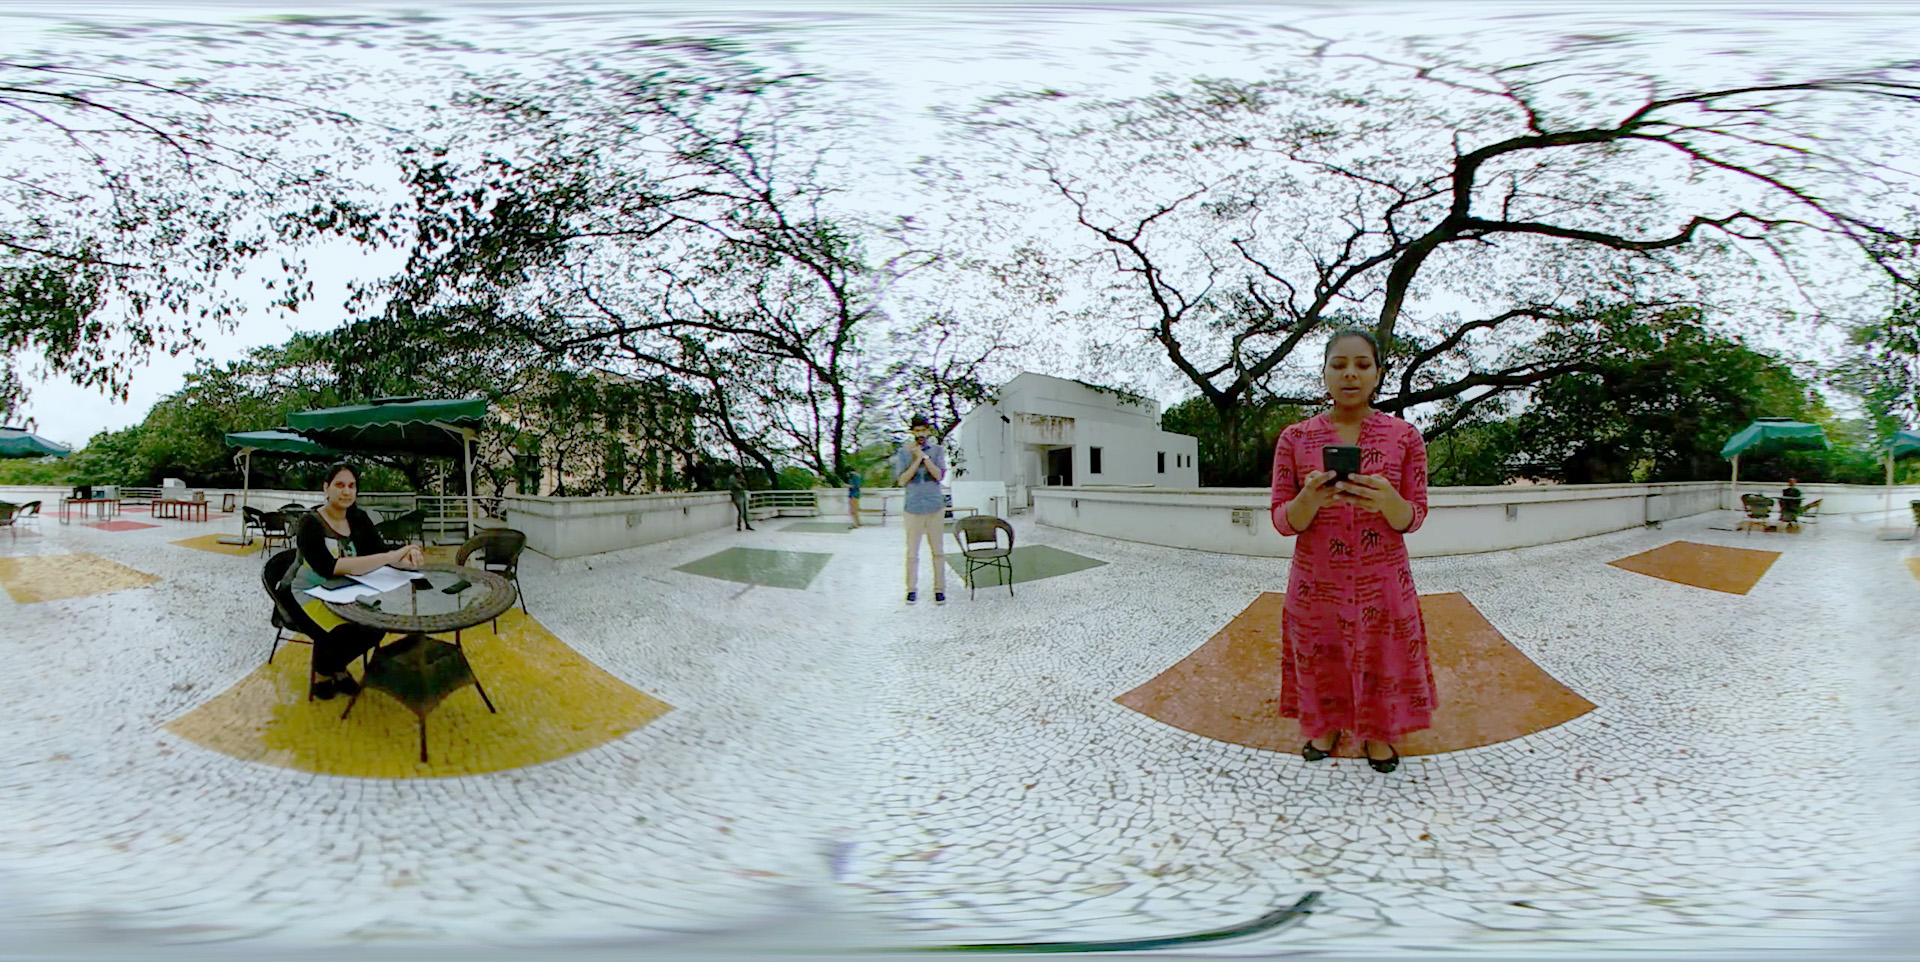 Rehearsal using a regular 360 camera